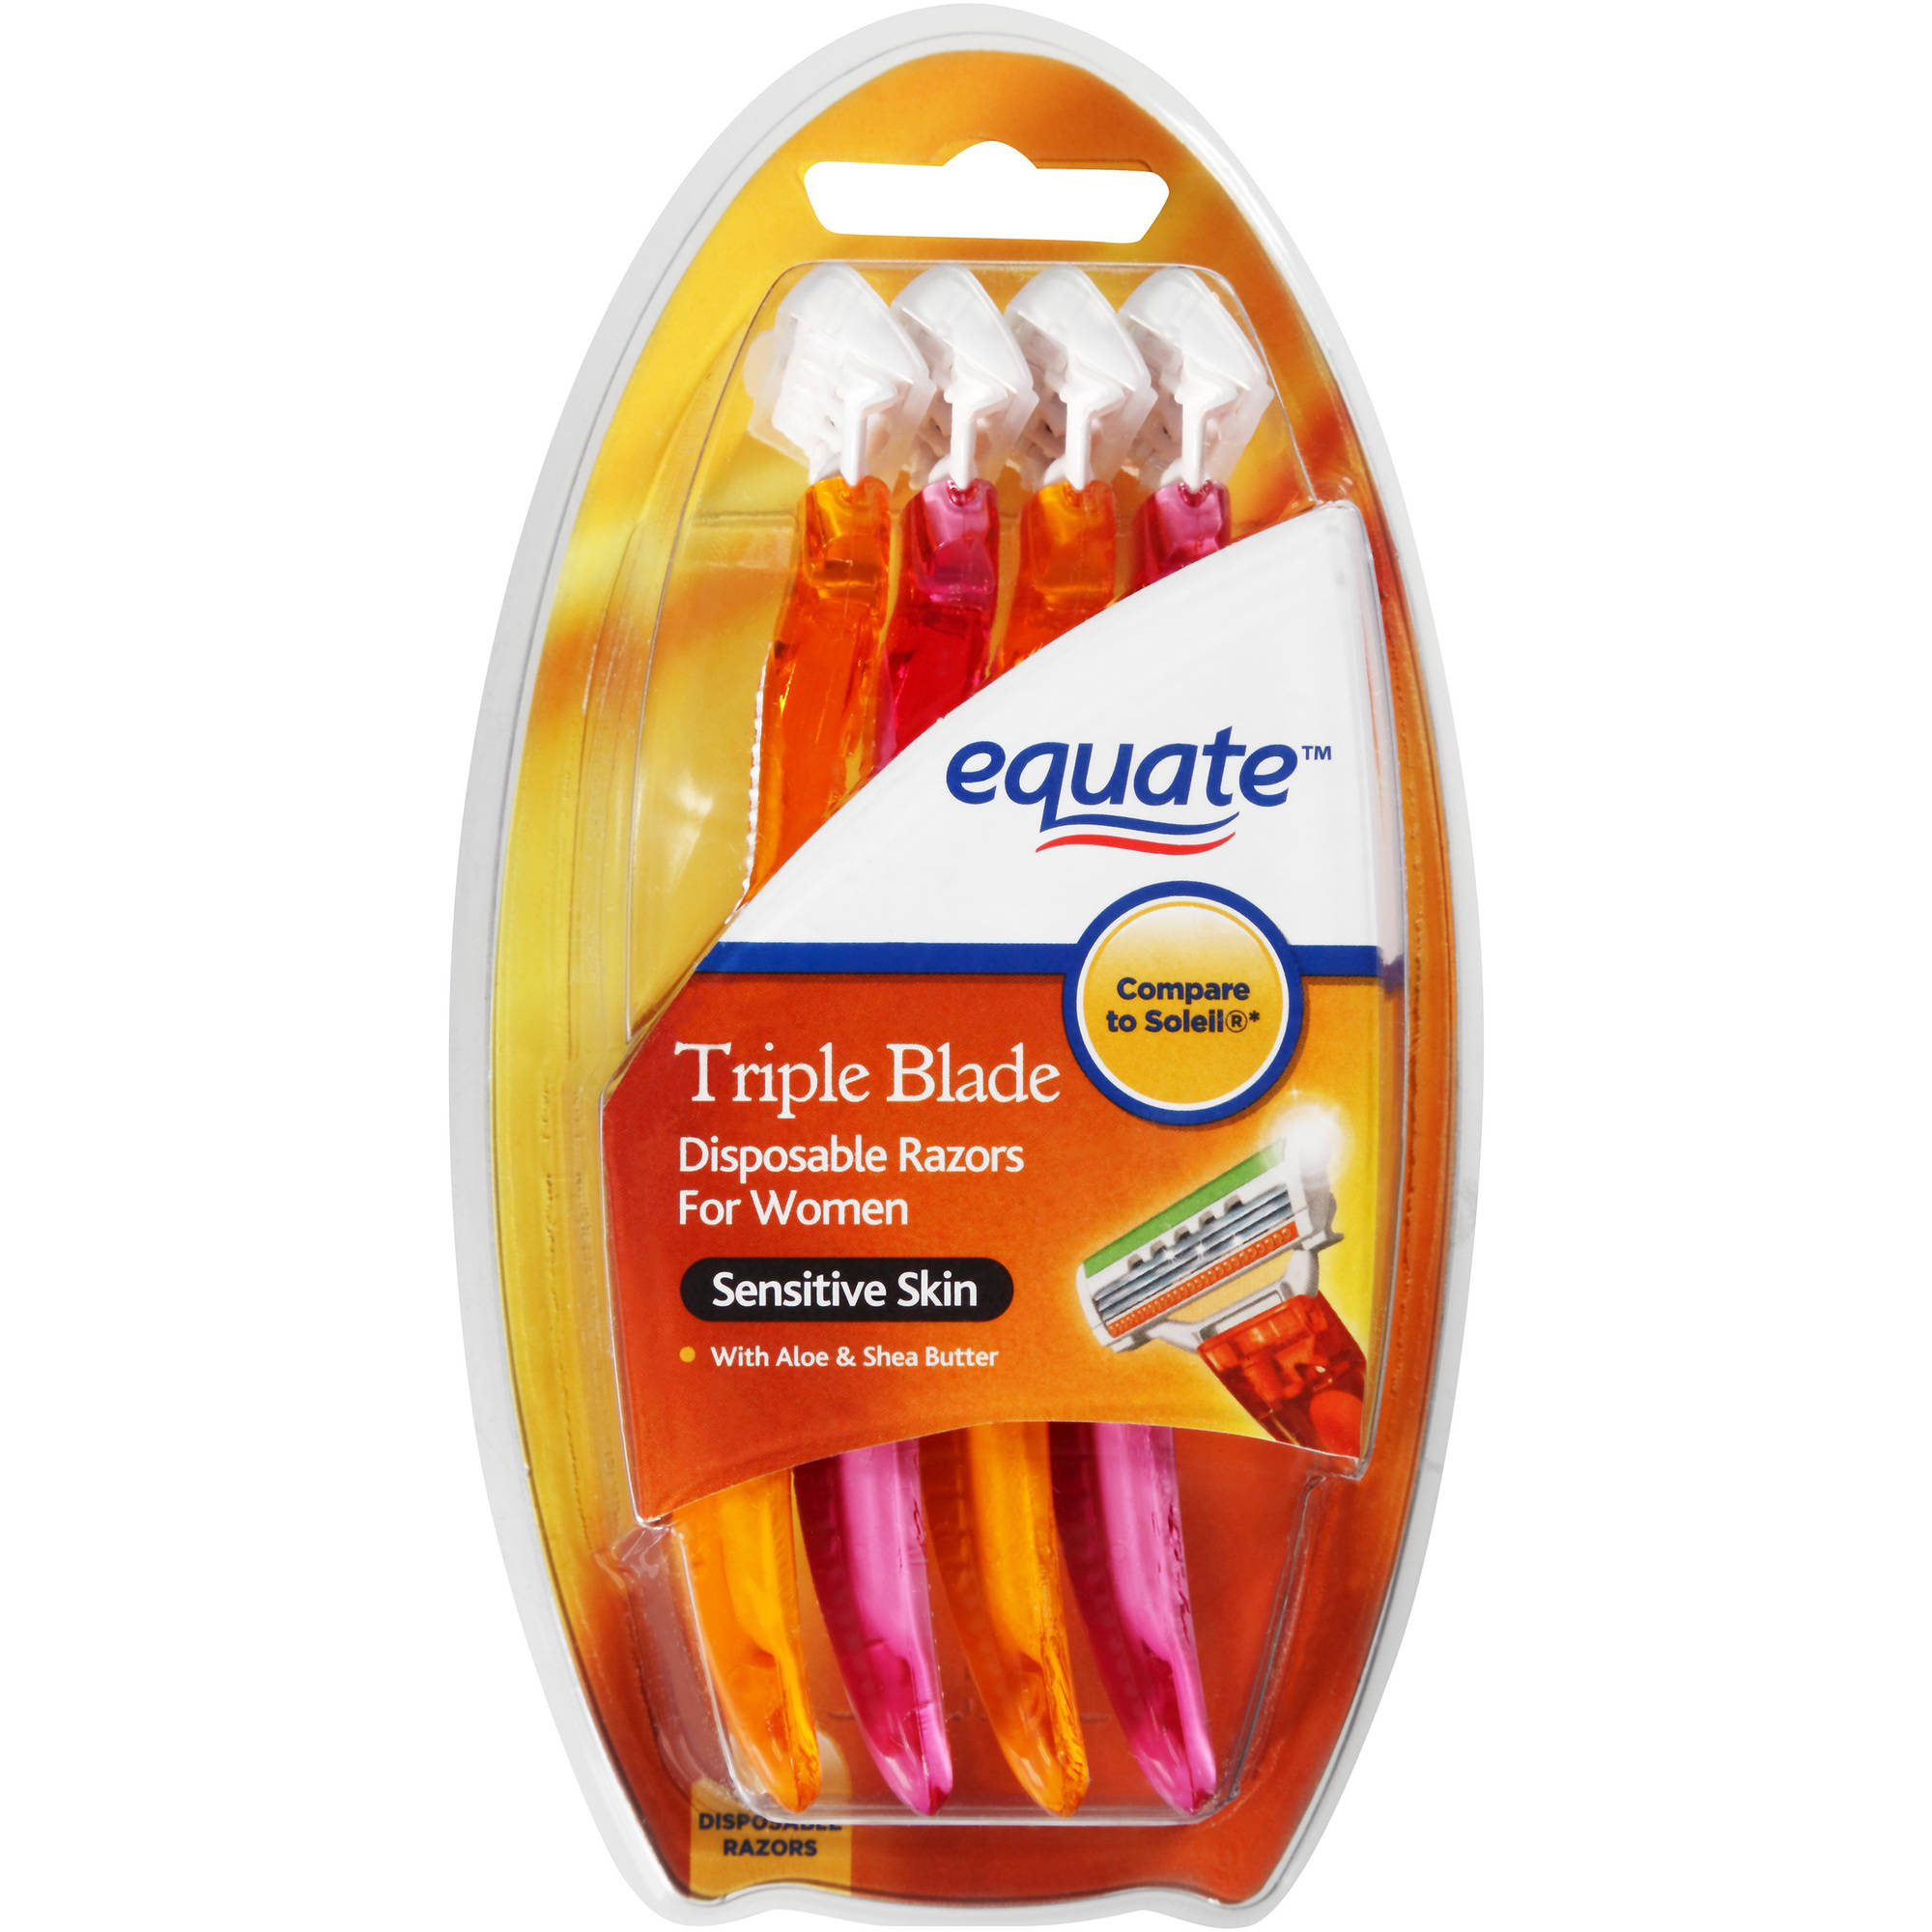 Equate Sensitive Skin Triple Blade Disposable Razors for Women, 4 count